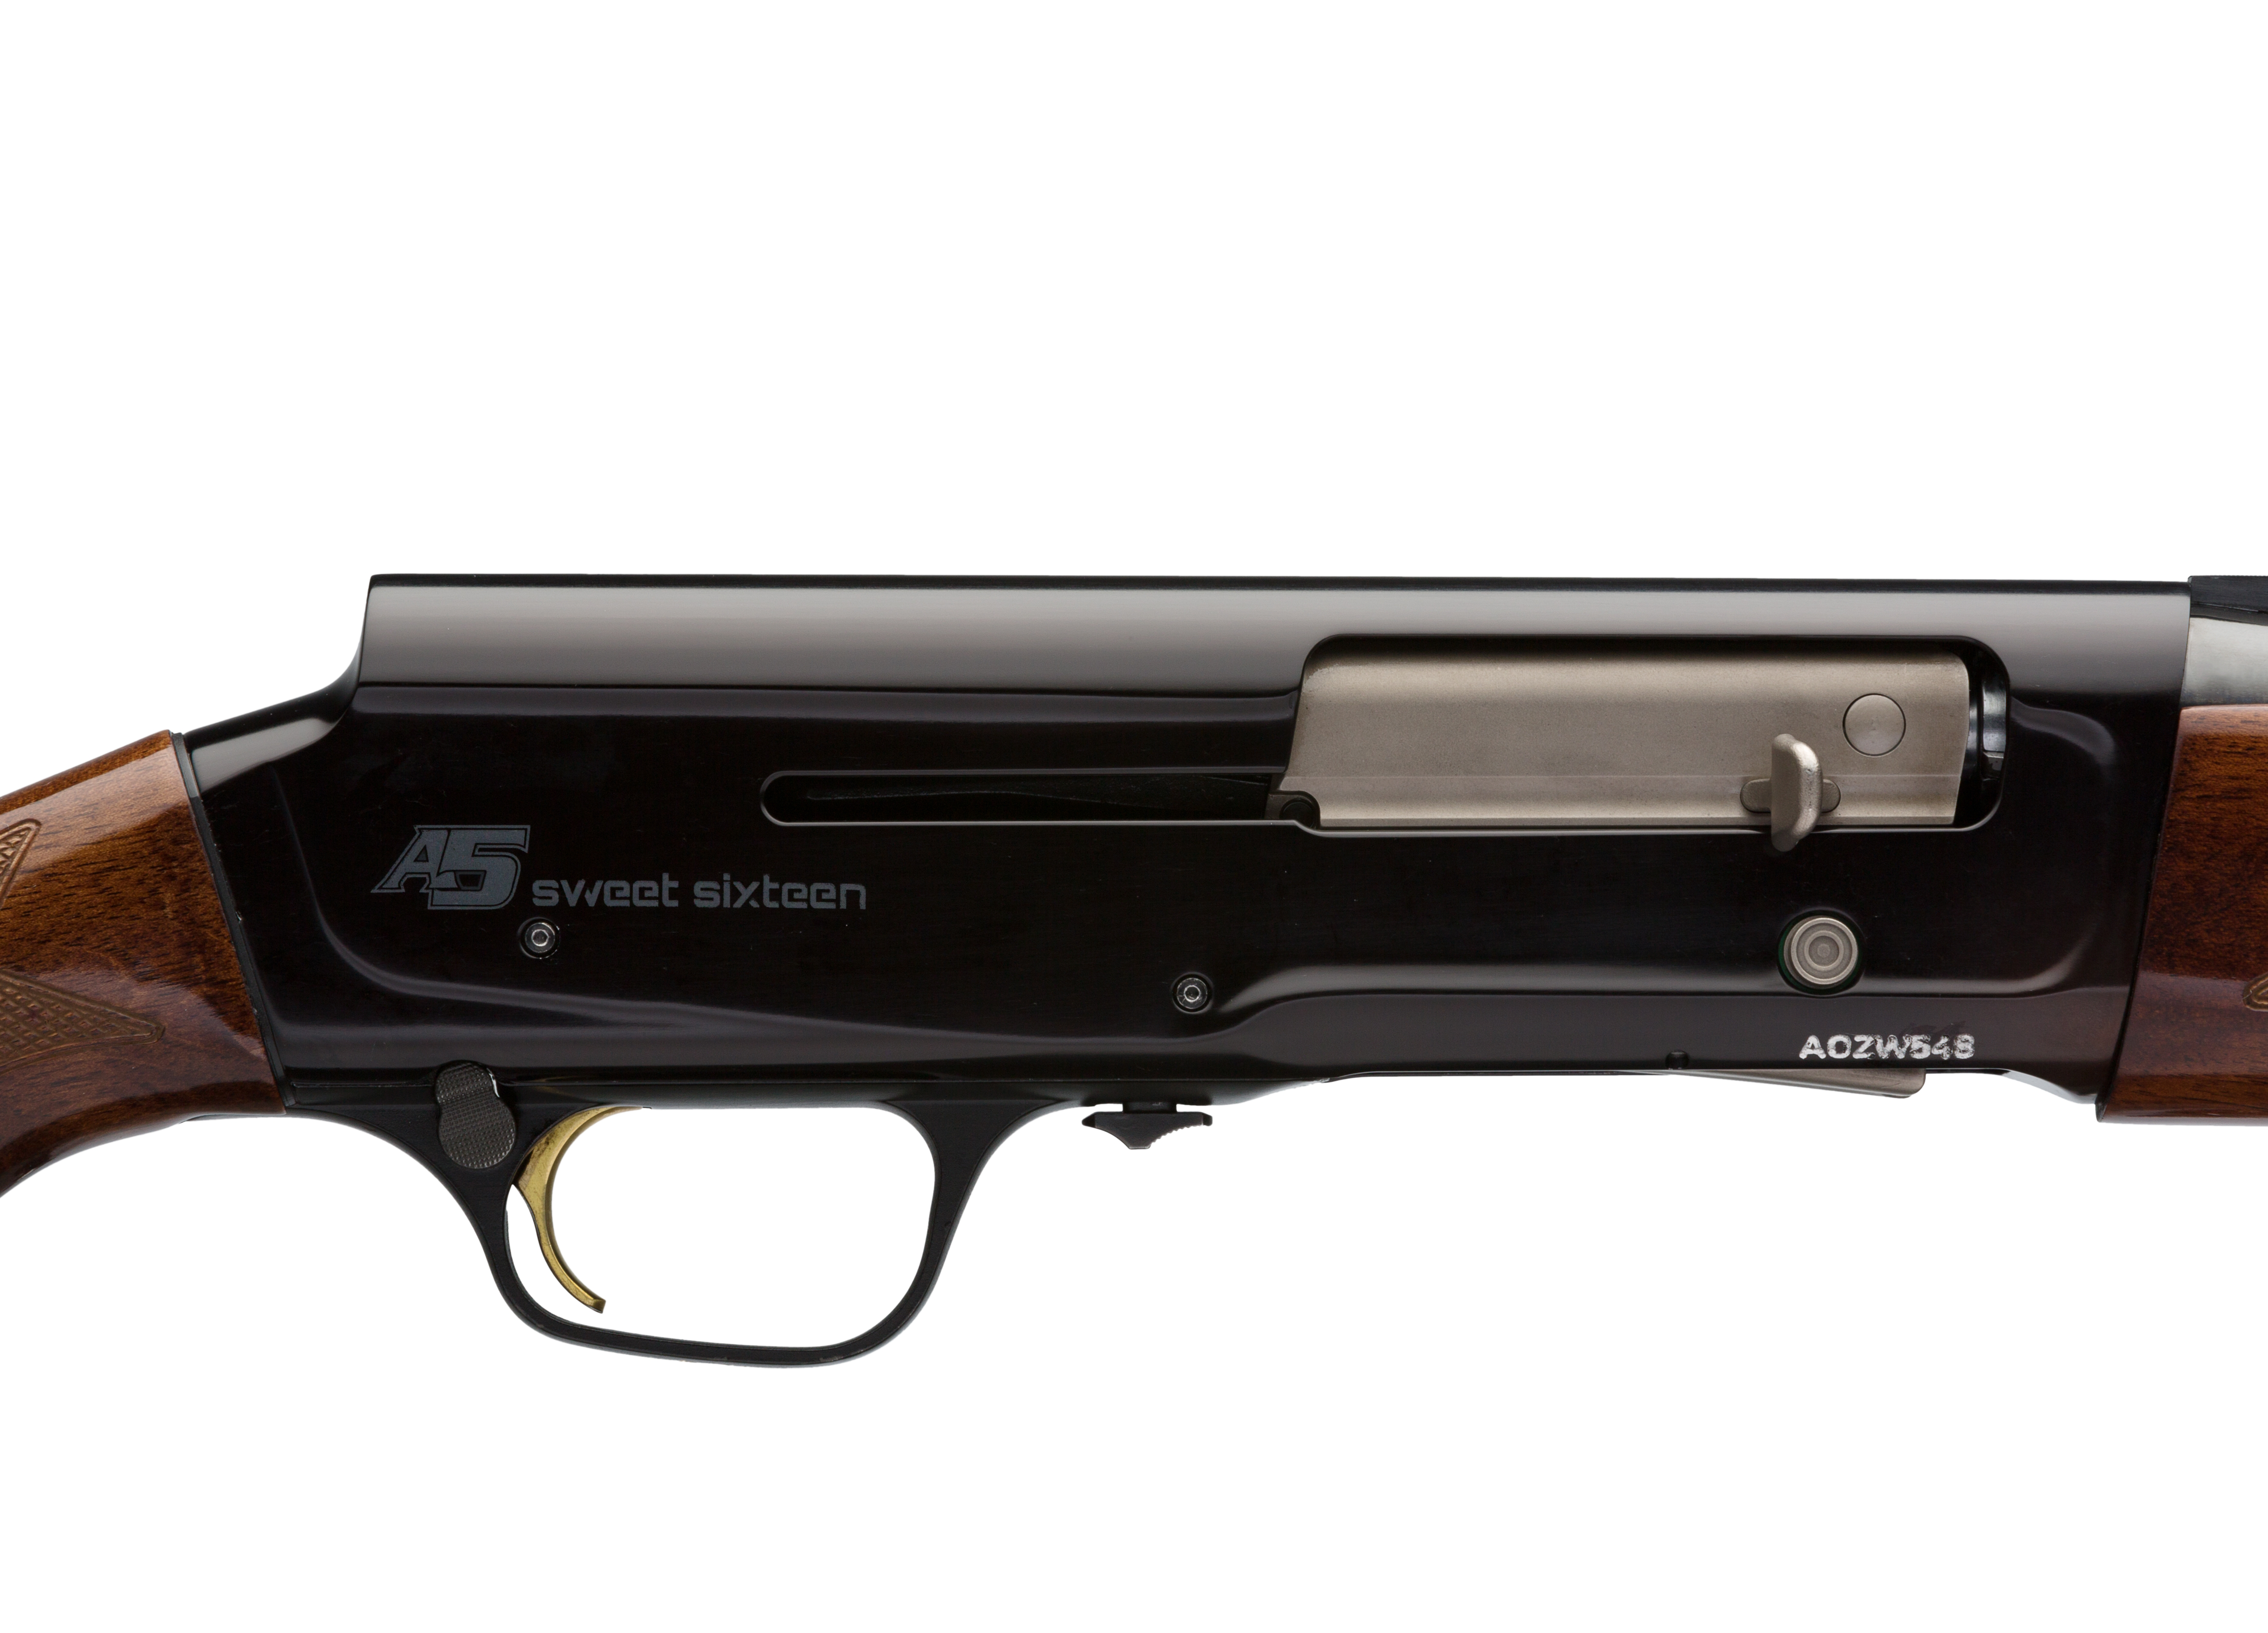 Coming to the Range: Browning A5 Sweet Sixteen